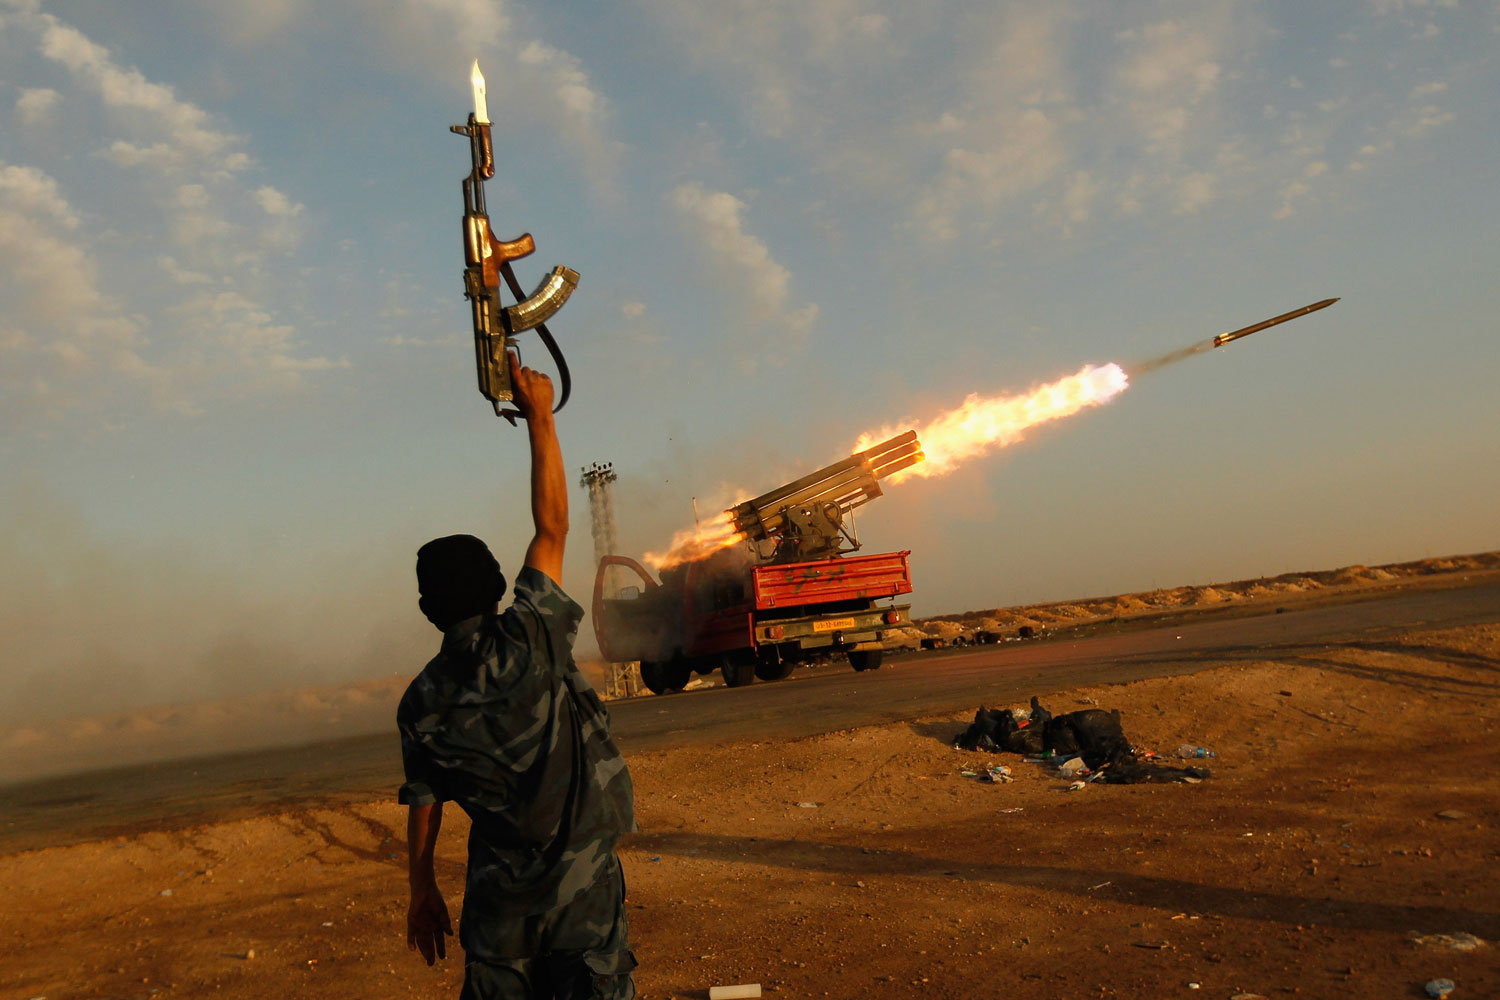 Ajdabiyah, Libya, April 14, 2011:  A rebel fighter celebrates as his comrades fire a rocket barrage toward the positions of troops loyal to Libyan ruler Muammar Gaddafi west of Ajdabiyah, Libya.